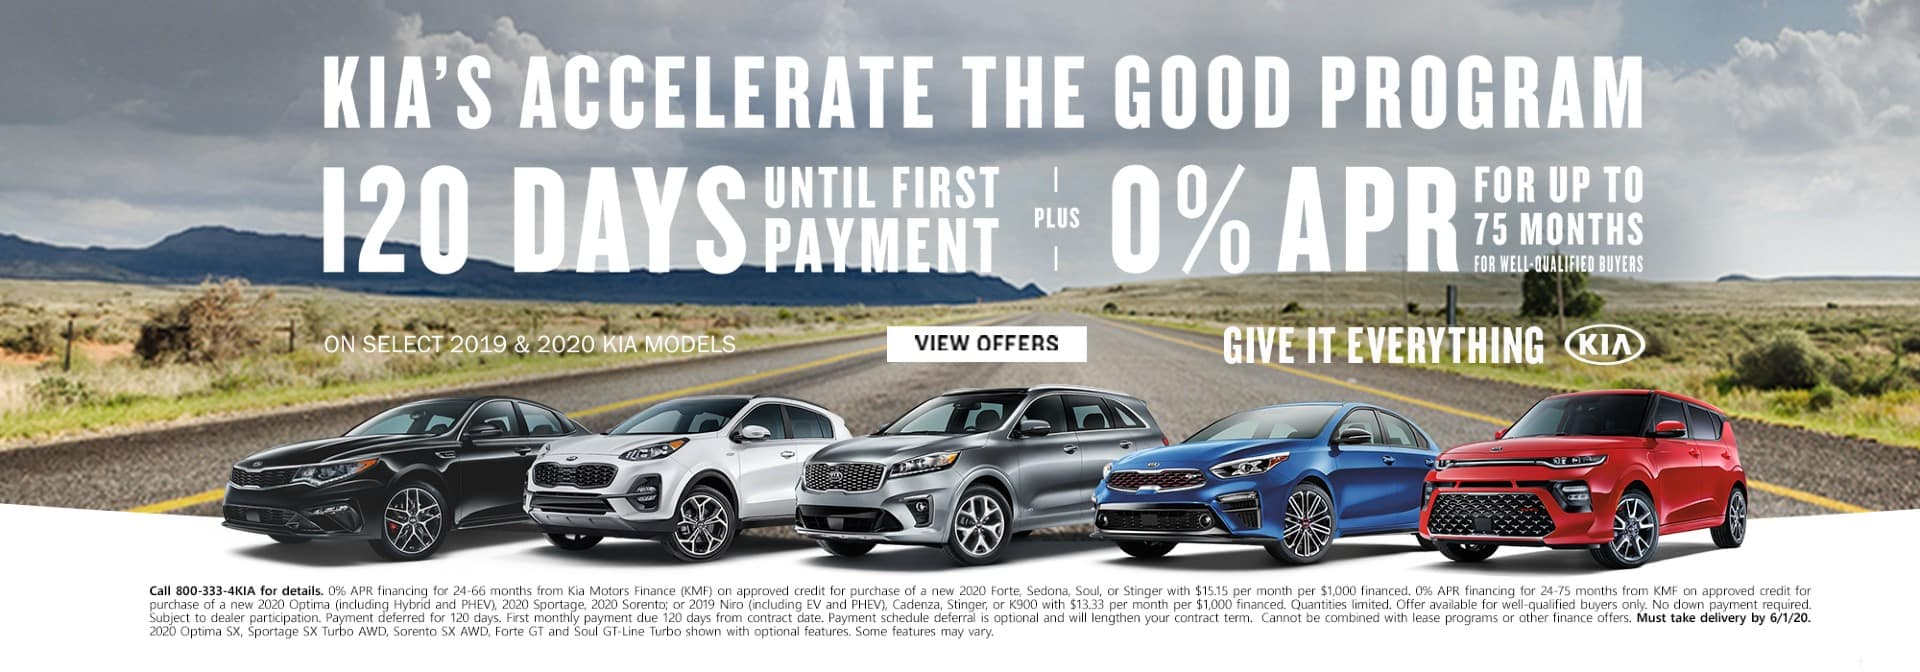 Kia Offer May 2020